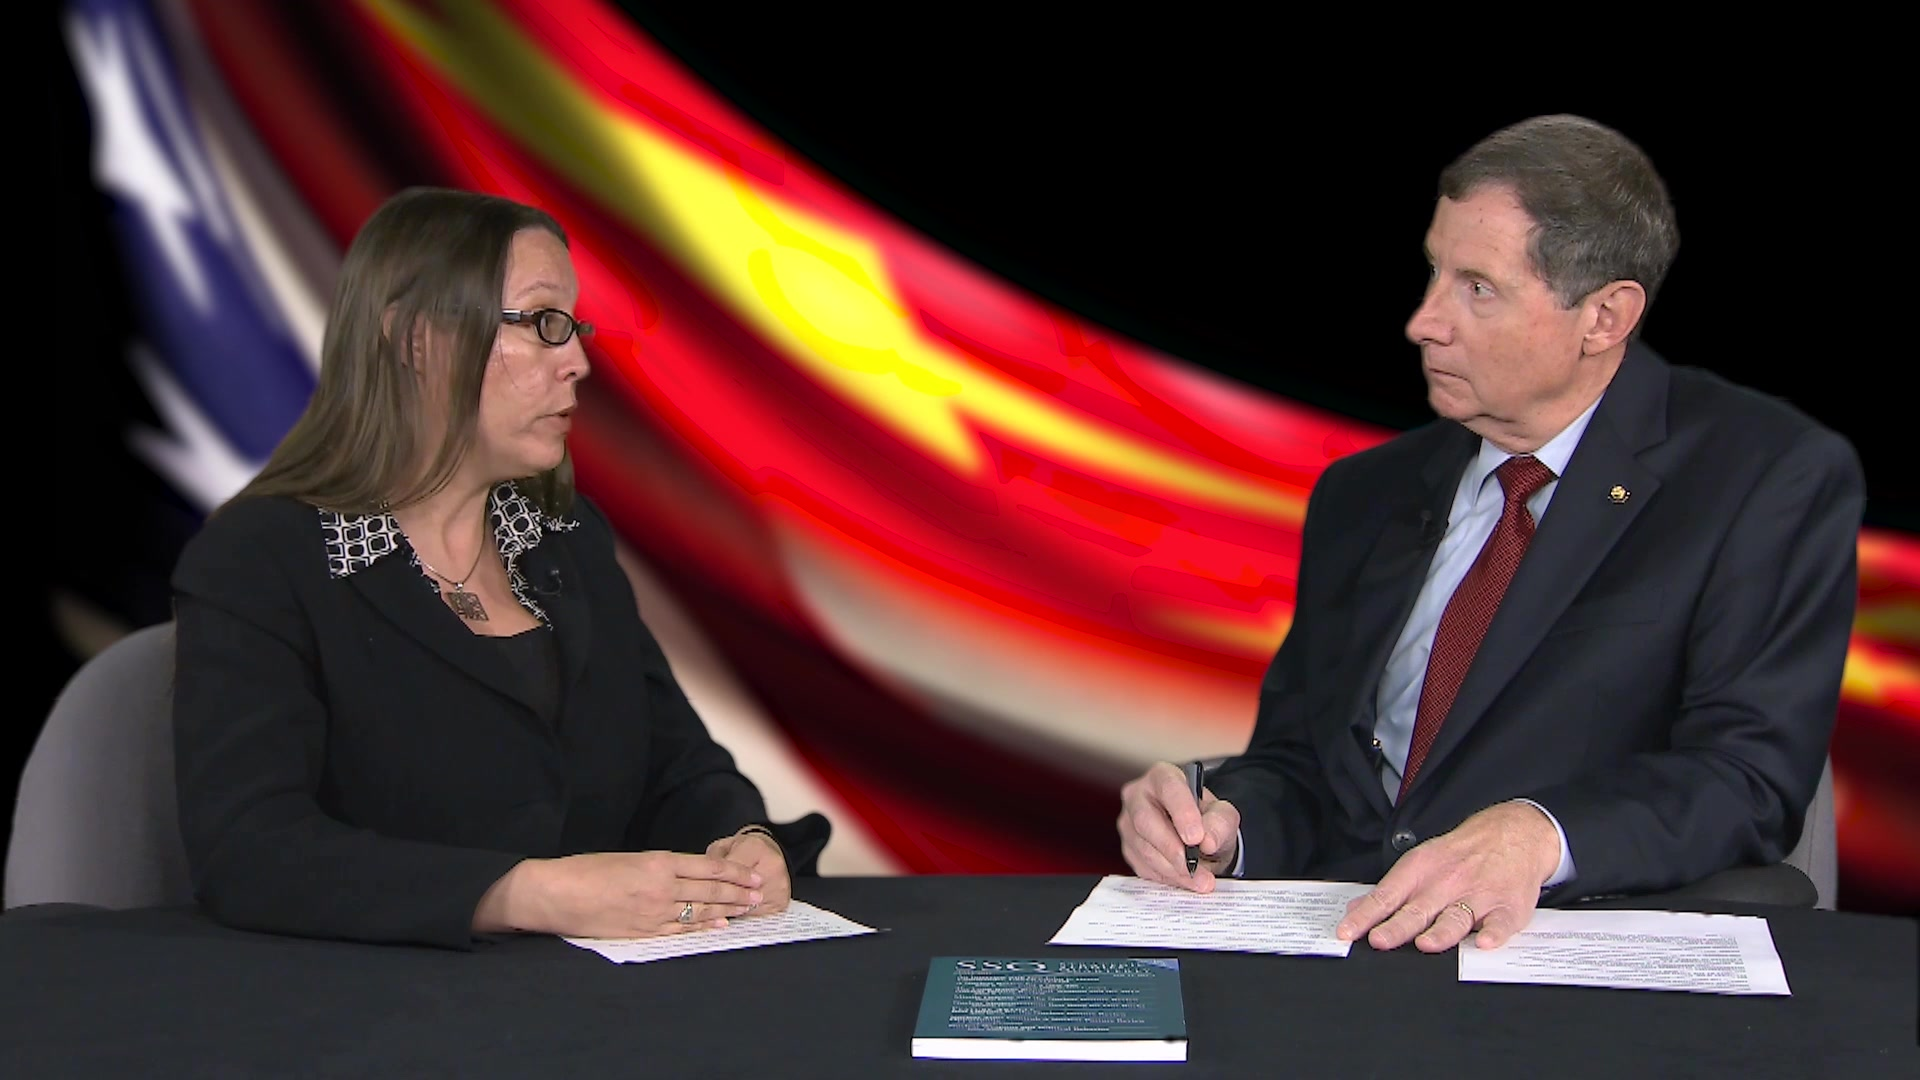 In this edition of Strategic Studies Quarterly (SSQ): Issues and Answers, the Editor of SSQ hosts a discussion about US-China Relations with Dr. Dawn Murphy from Air University's Air War College (AWC).  Michael Guillot - Editor, SSQ Dr. Dawn Murphy - Assistant Professor of International Security, AWC